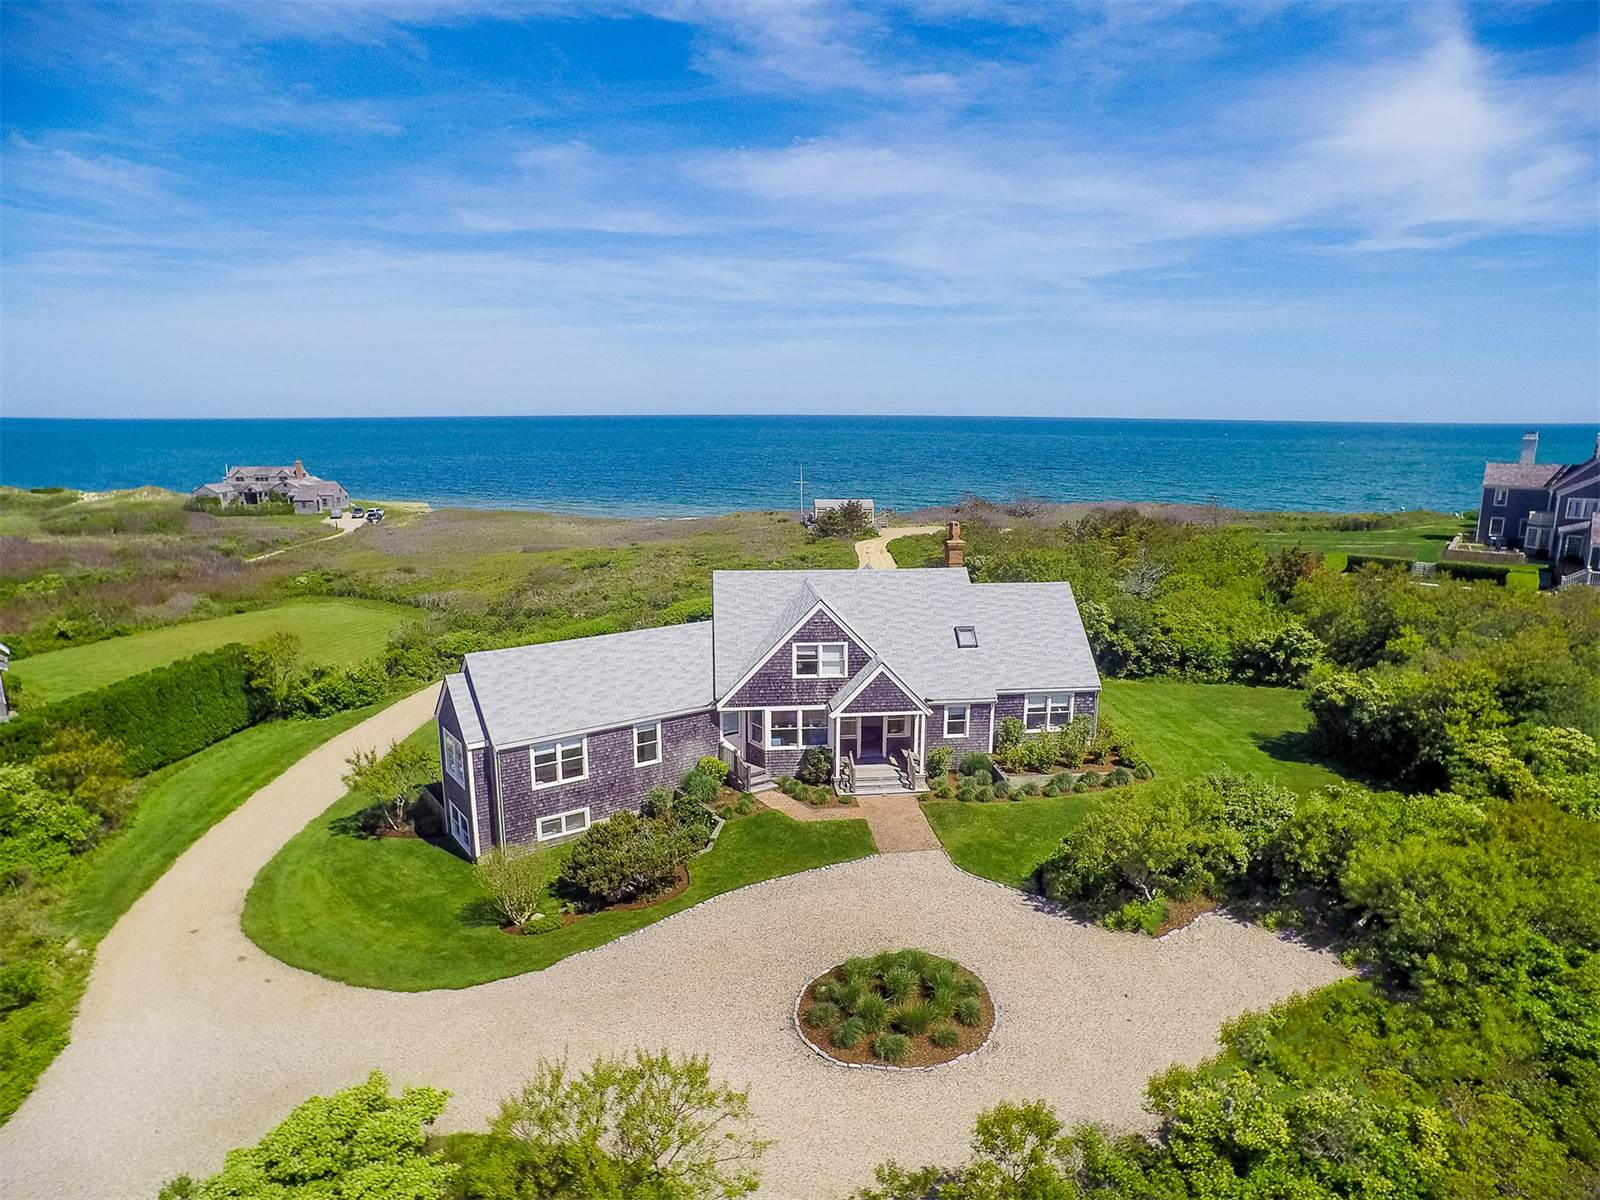 This waterfront estate on Dionis Beach on the island jewel of Nantucket features a charming Shingle-style residence, verdant grounds, and a traditional bath house by the sea.